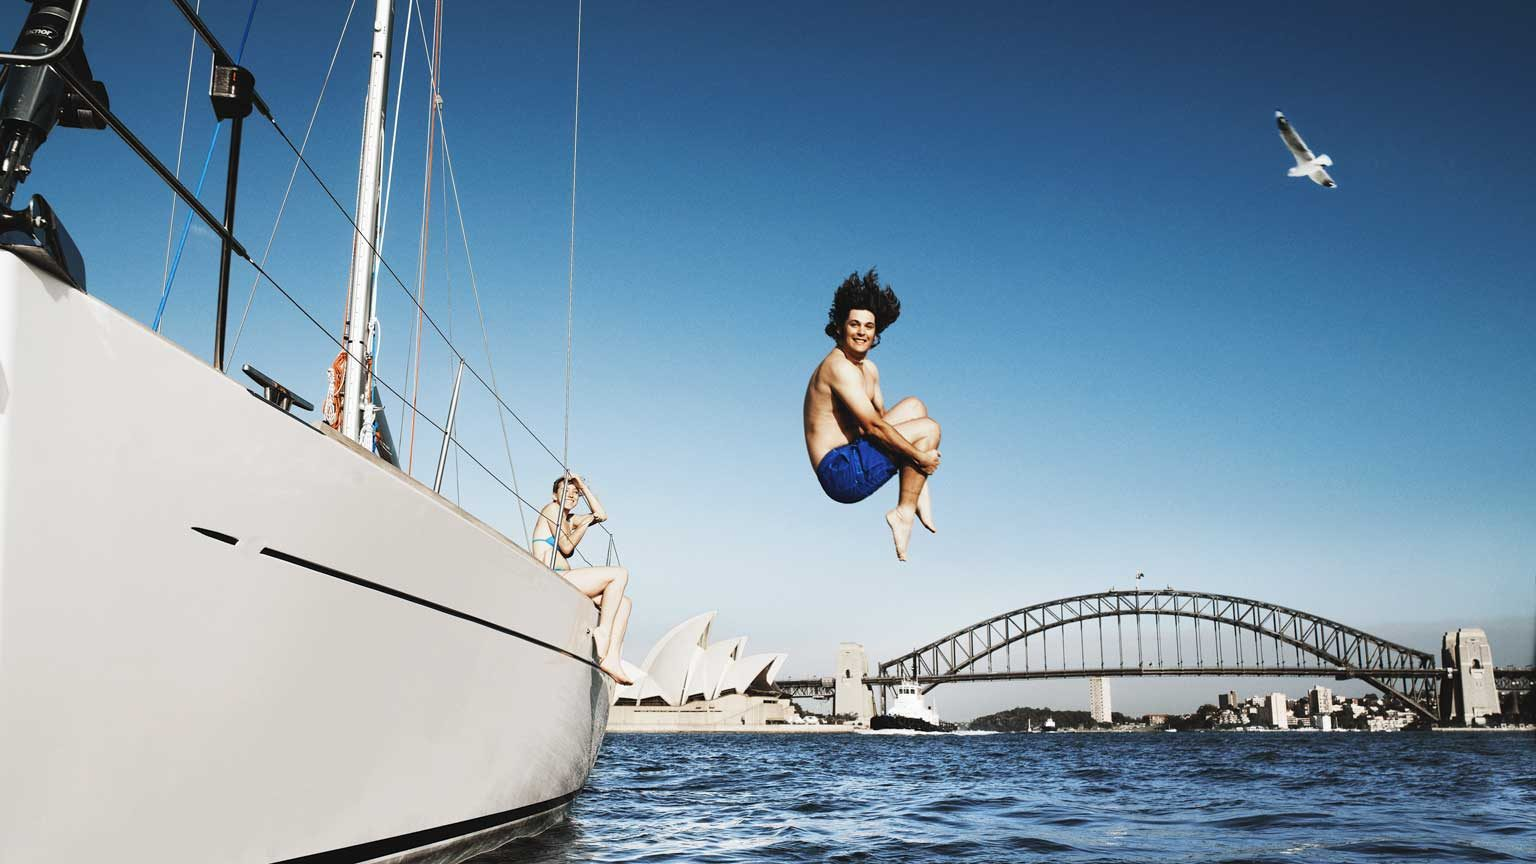 Australia, Sydney, young man jumping from boat in to harbour